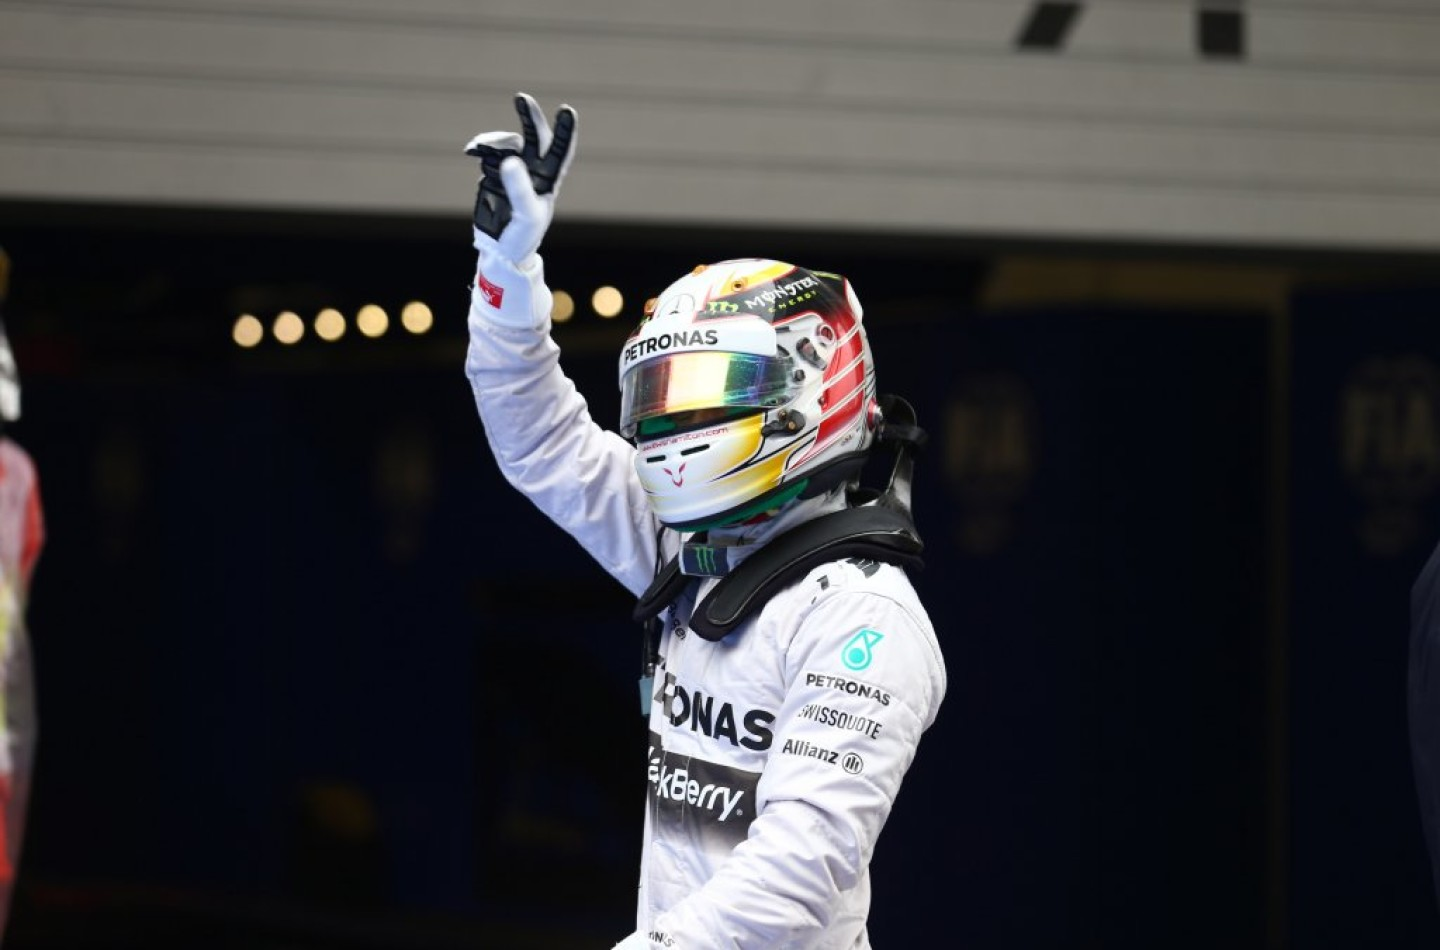 Qualifiche GP d'Australia 2015: Hamilton in pole su Rosberg e Massa